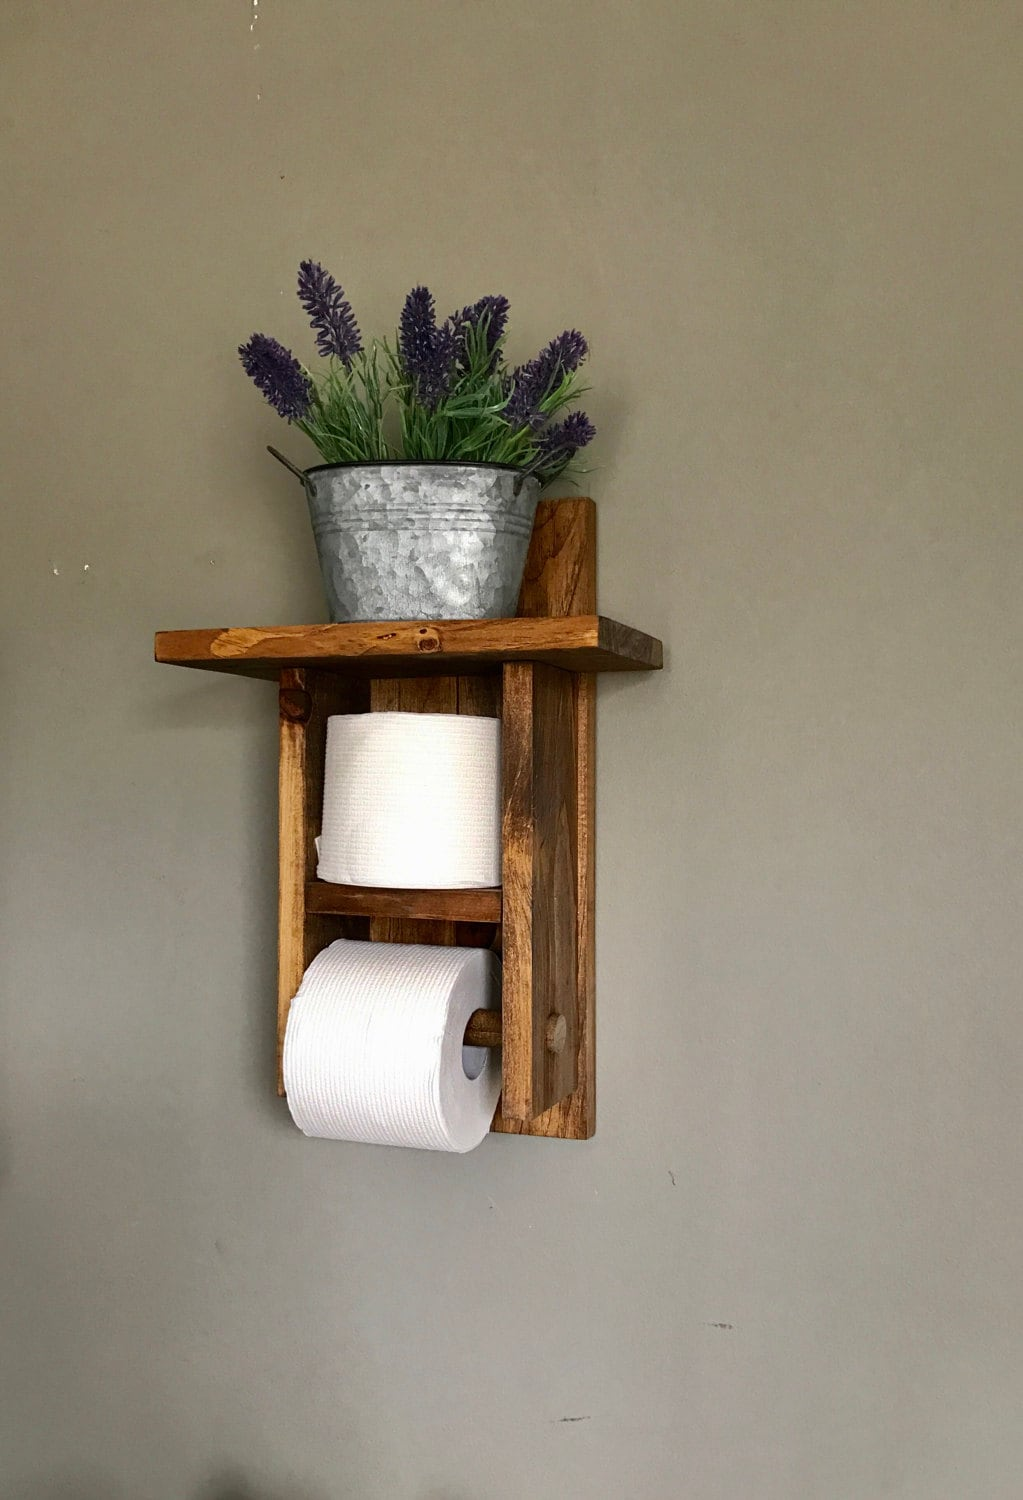 Toilet paper holder bathroom decor toilet paper storage Wood toilet paper holders